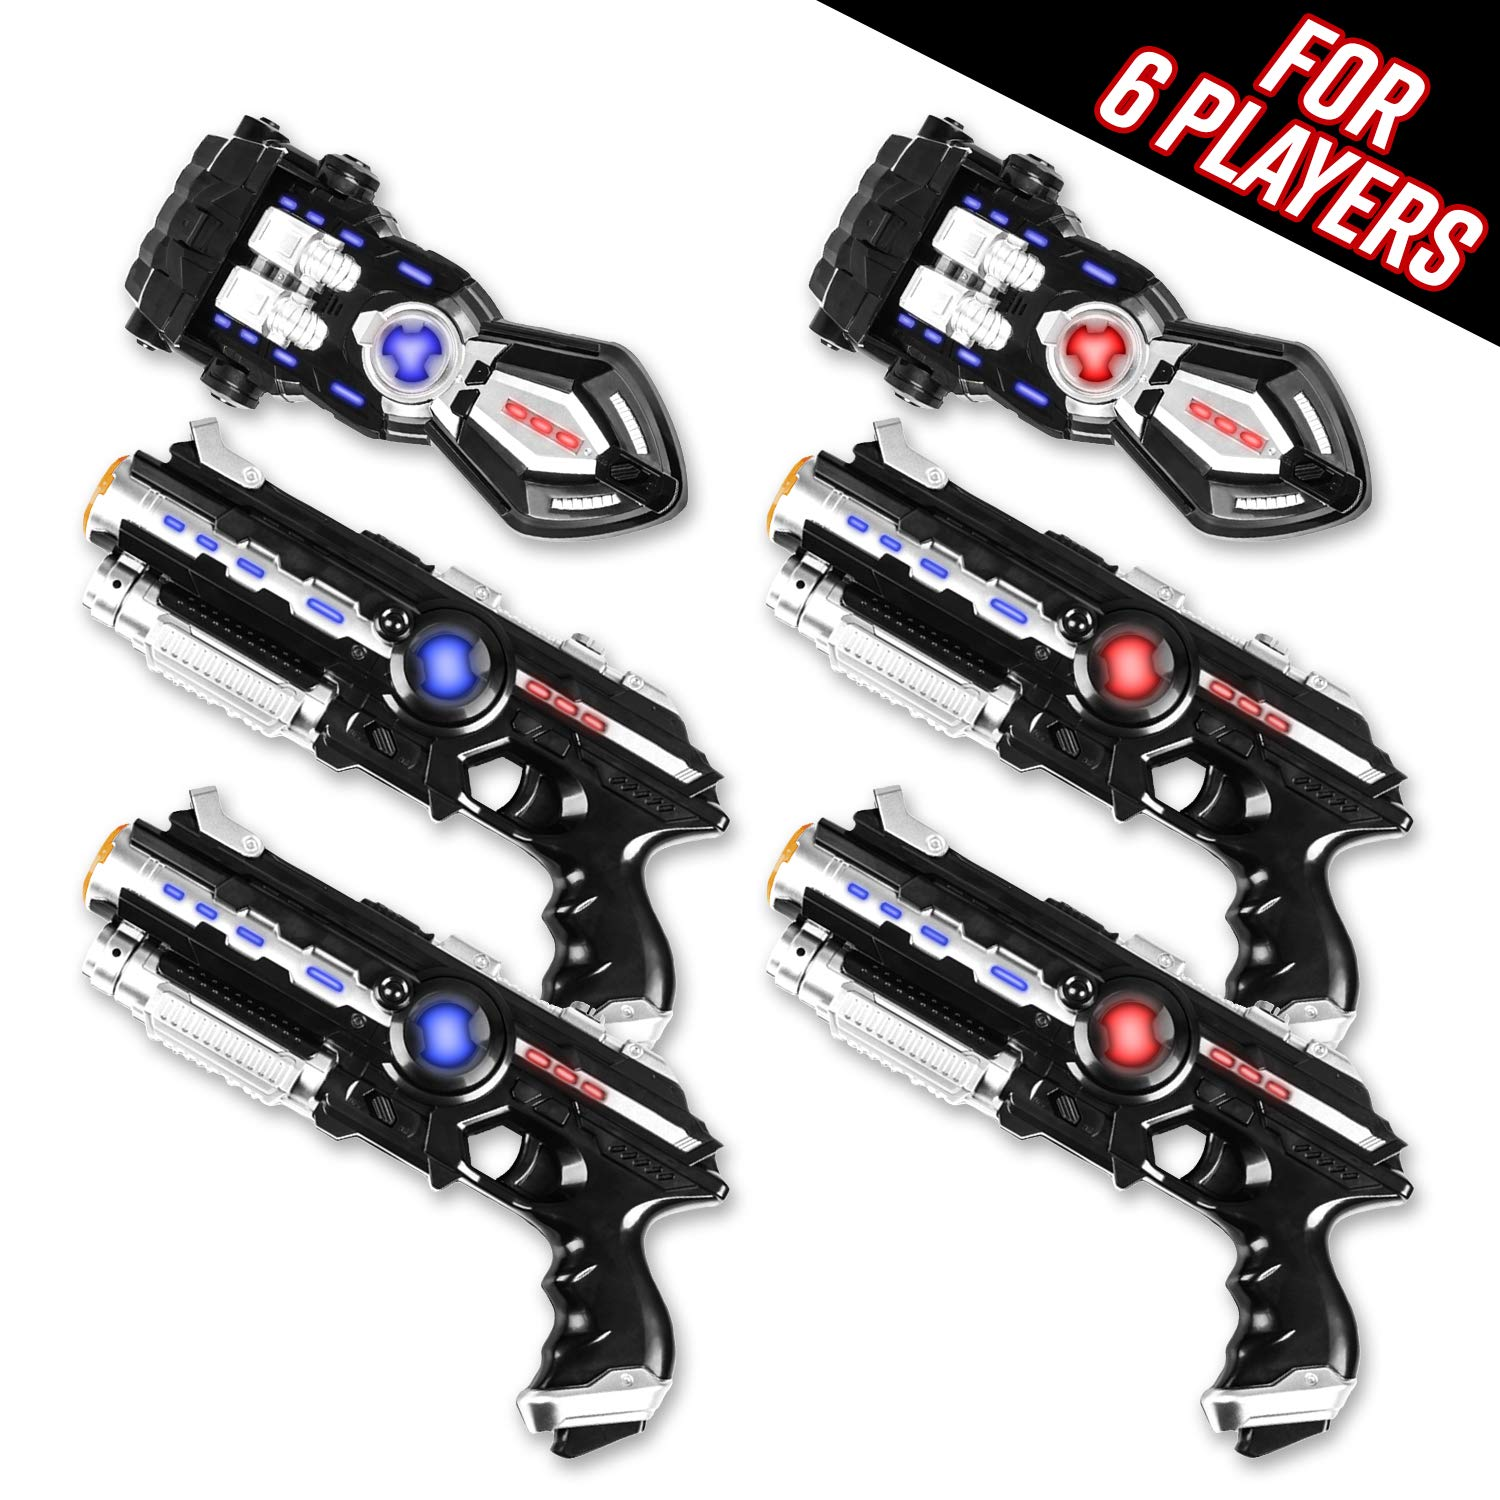 Power Tag Infrared Laser Tag Gun & Glove Set - for Kids & Adults - 6 Player Pack with 4 Guns and 2 Battle Blasters - Infrared -1mW by Power Tag (Image #1)